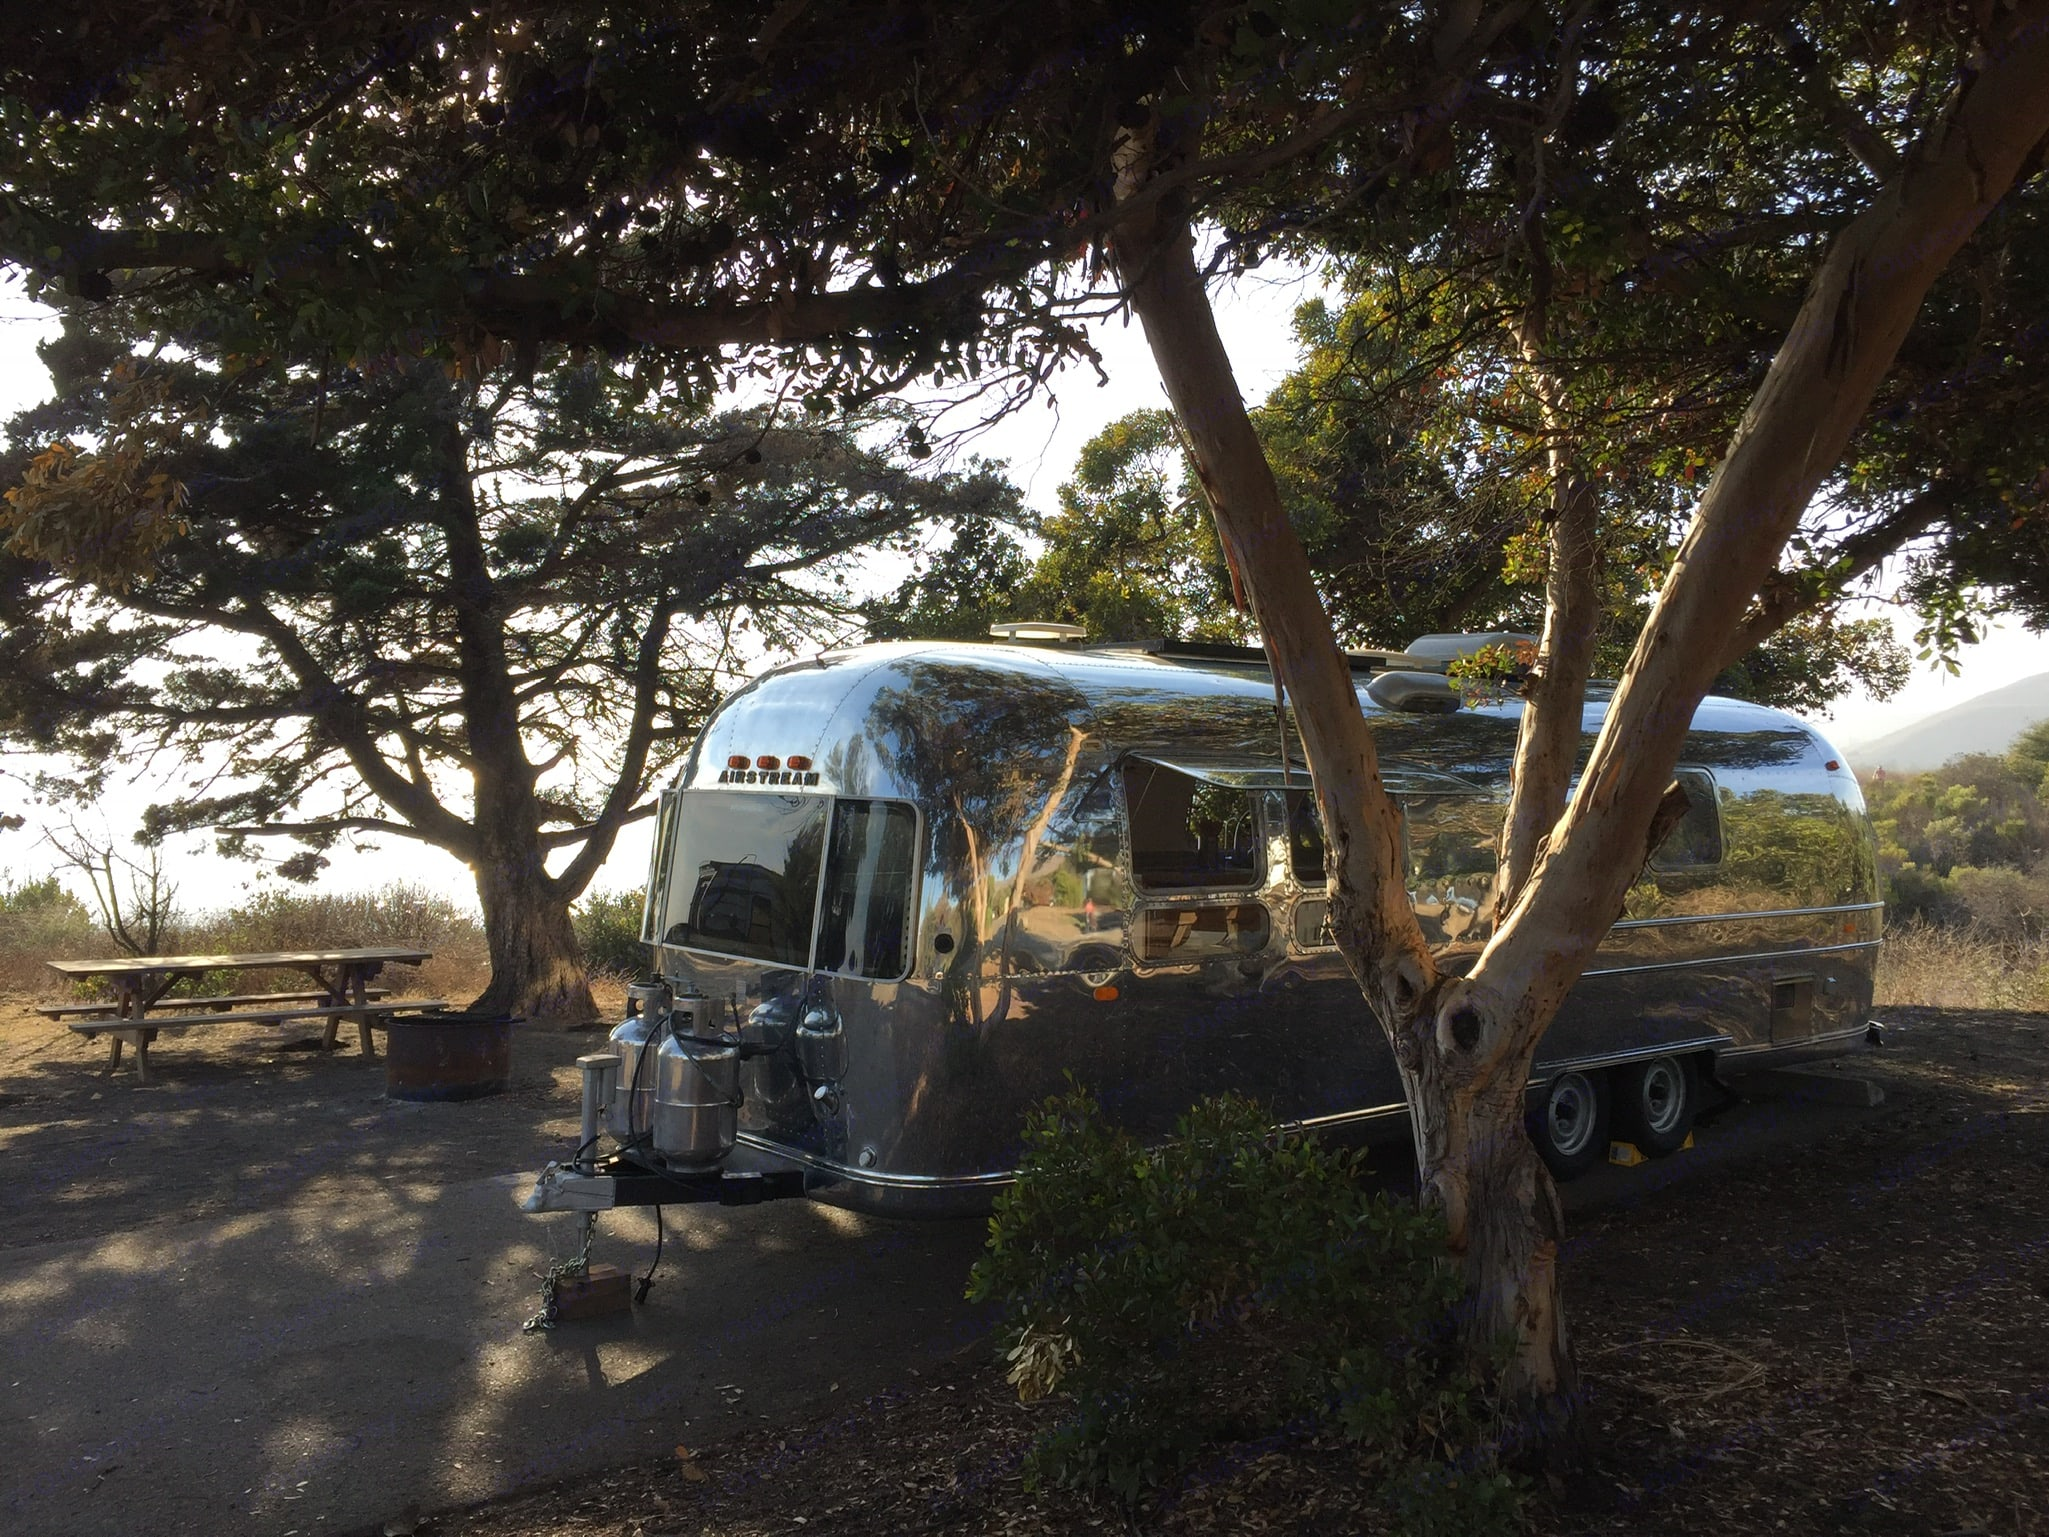 Camping in the trees at El Capitan this trailer is an absolute gem.. Airstream Ambassador 1969